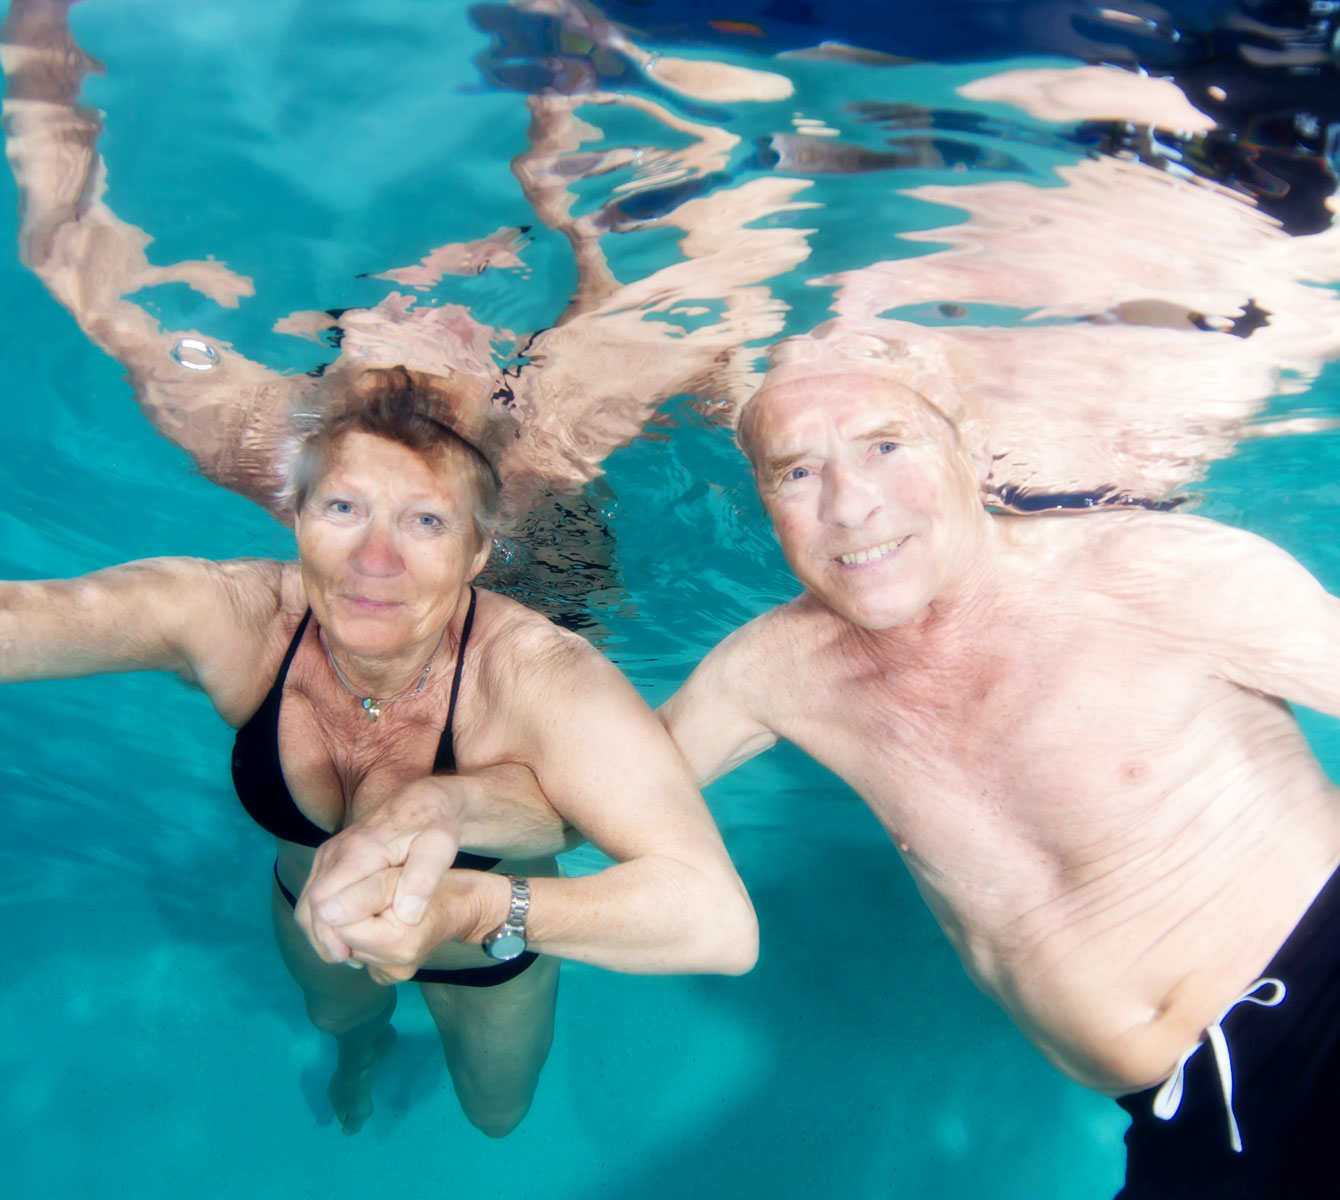 Cash Pool Flensburg Elke And Peter 2 Time Cancer Survivors Underwater Healer About